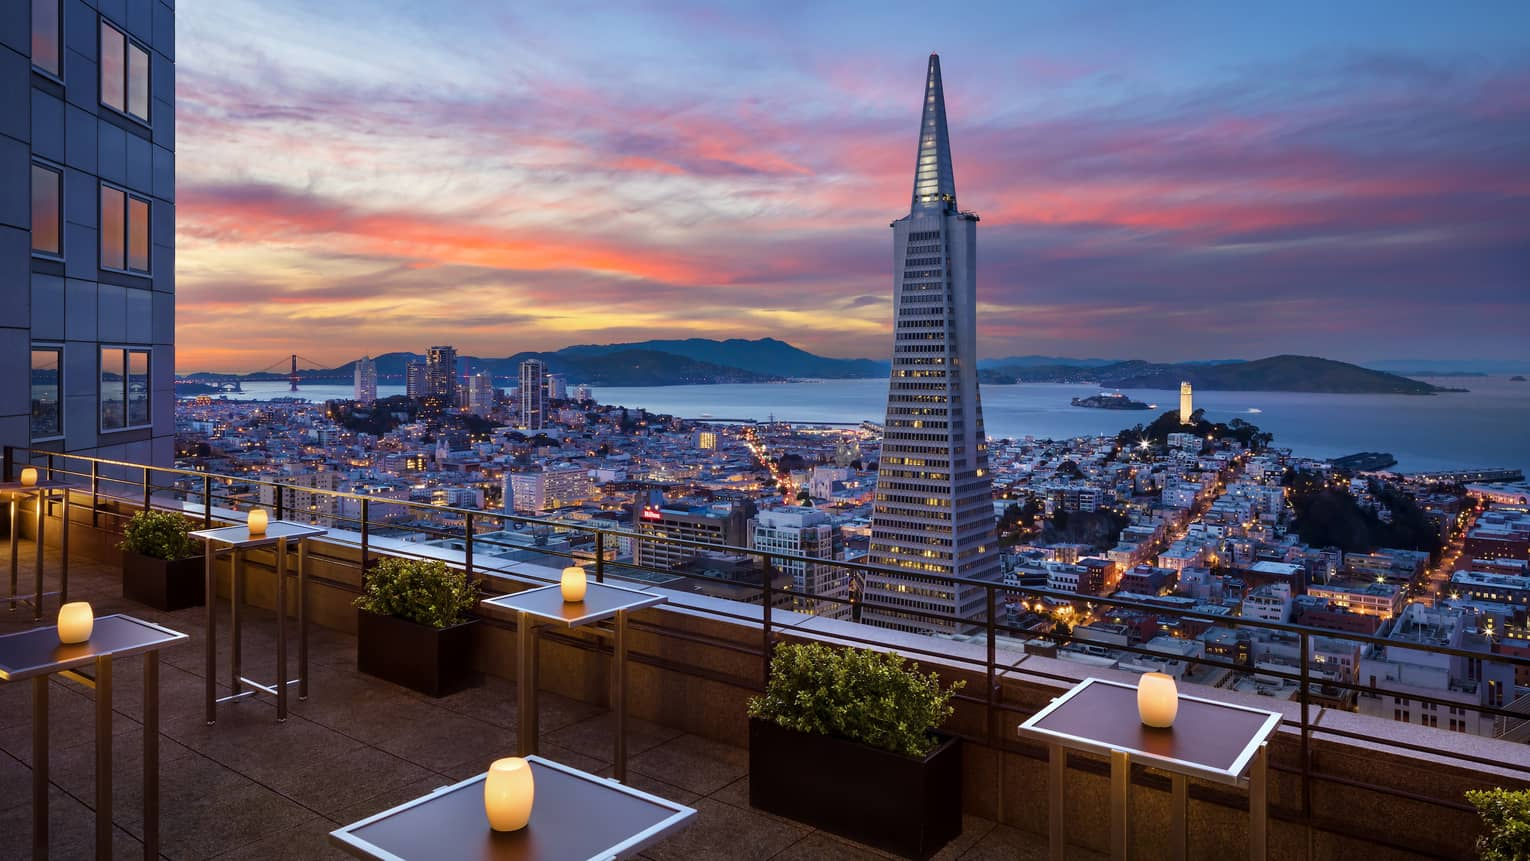 The sunset view over San Francisco from Four Seasons Hotel San Francisco at Embarcadero